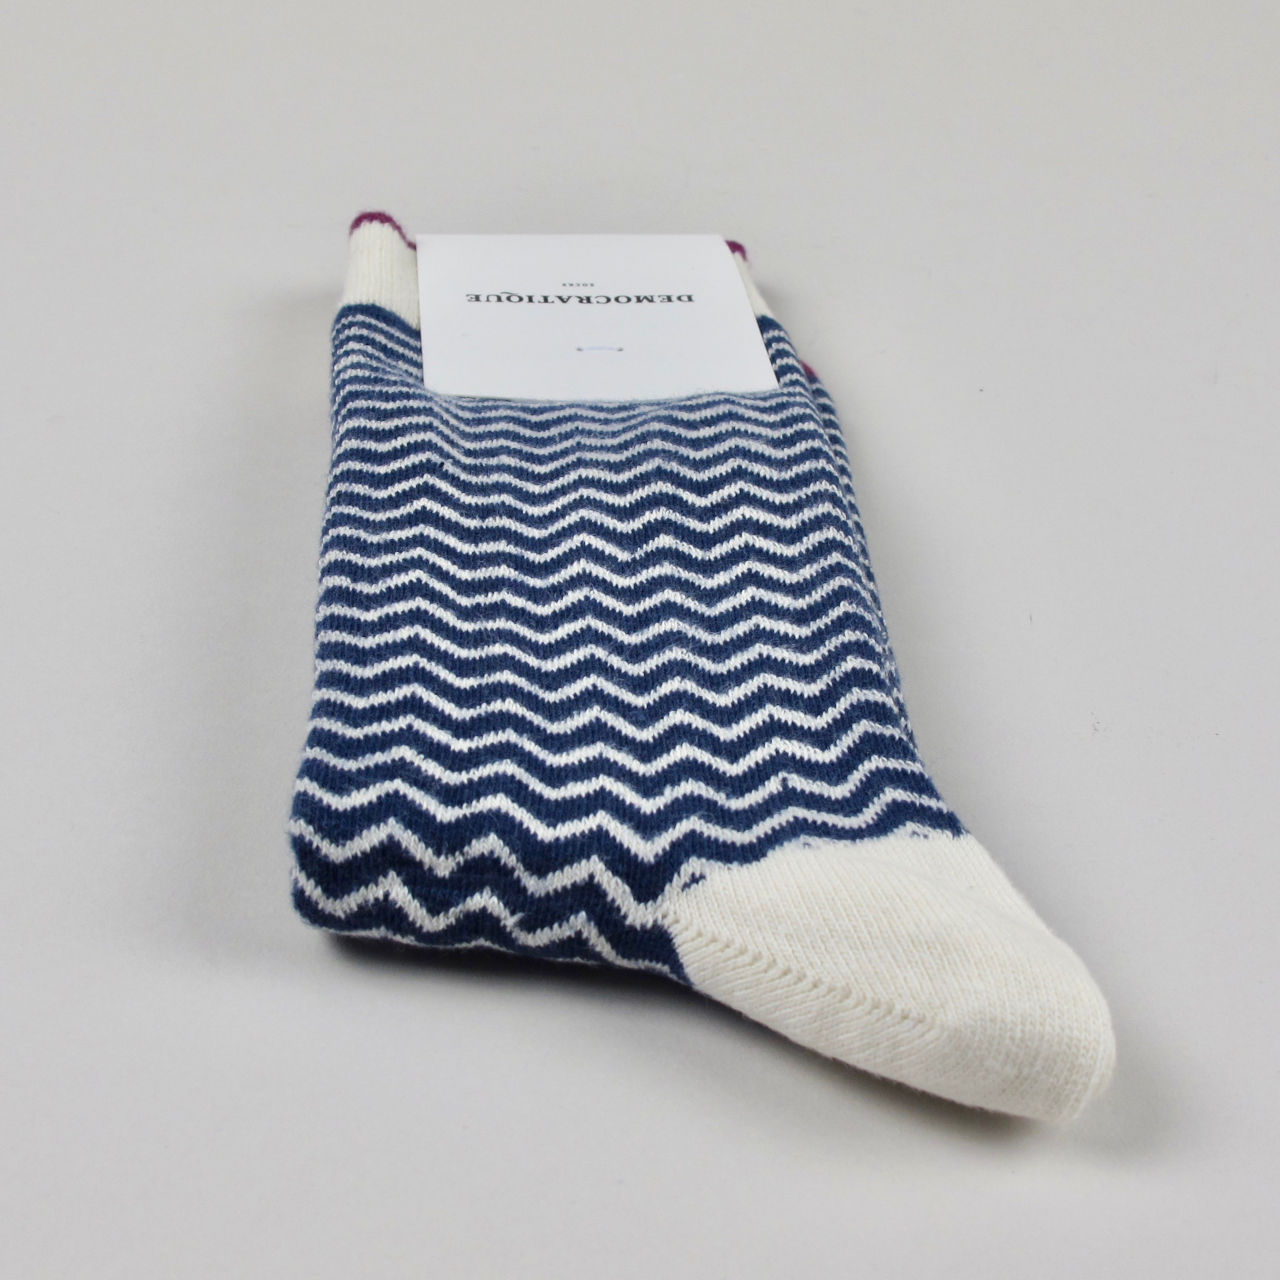 Men's Socks - Zigger Zagger - Shaded Blue/Off White/ Wild Berry